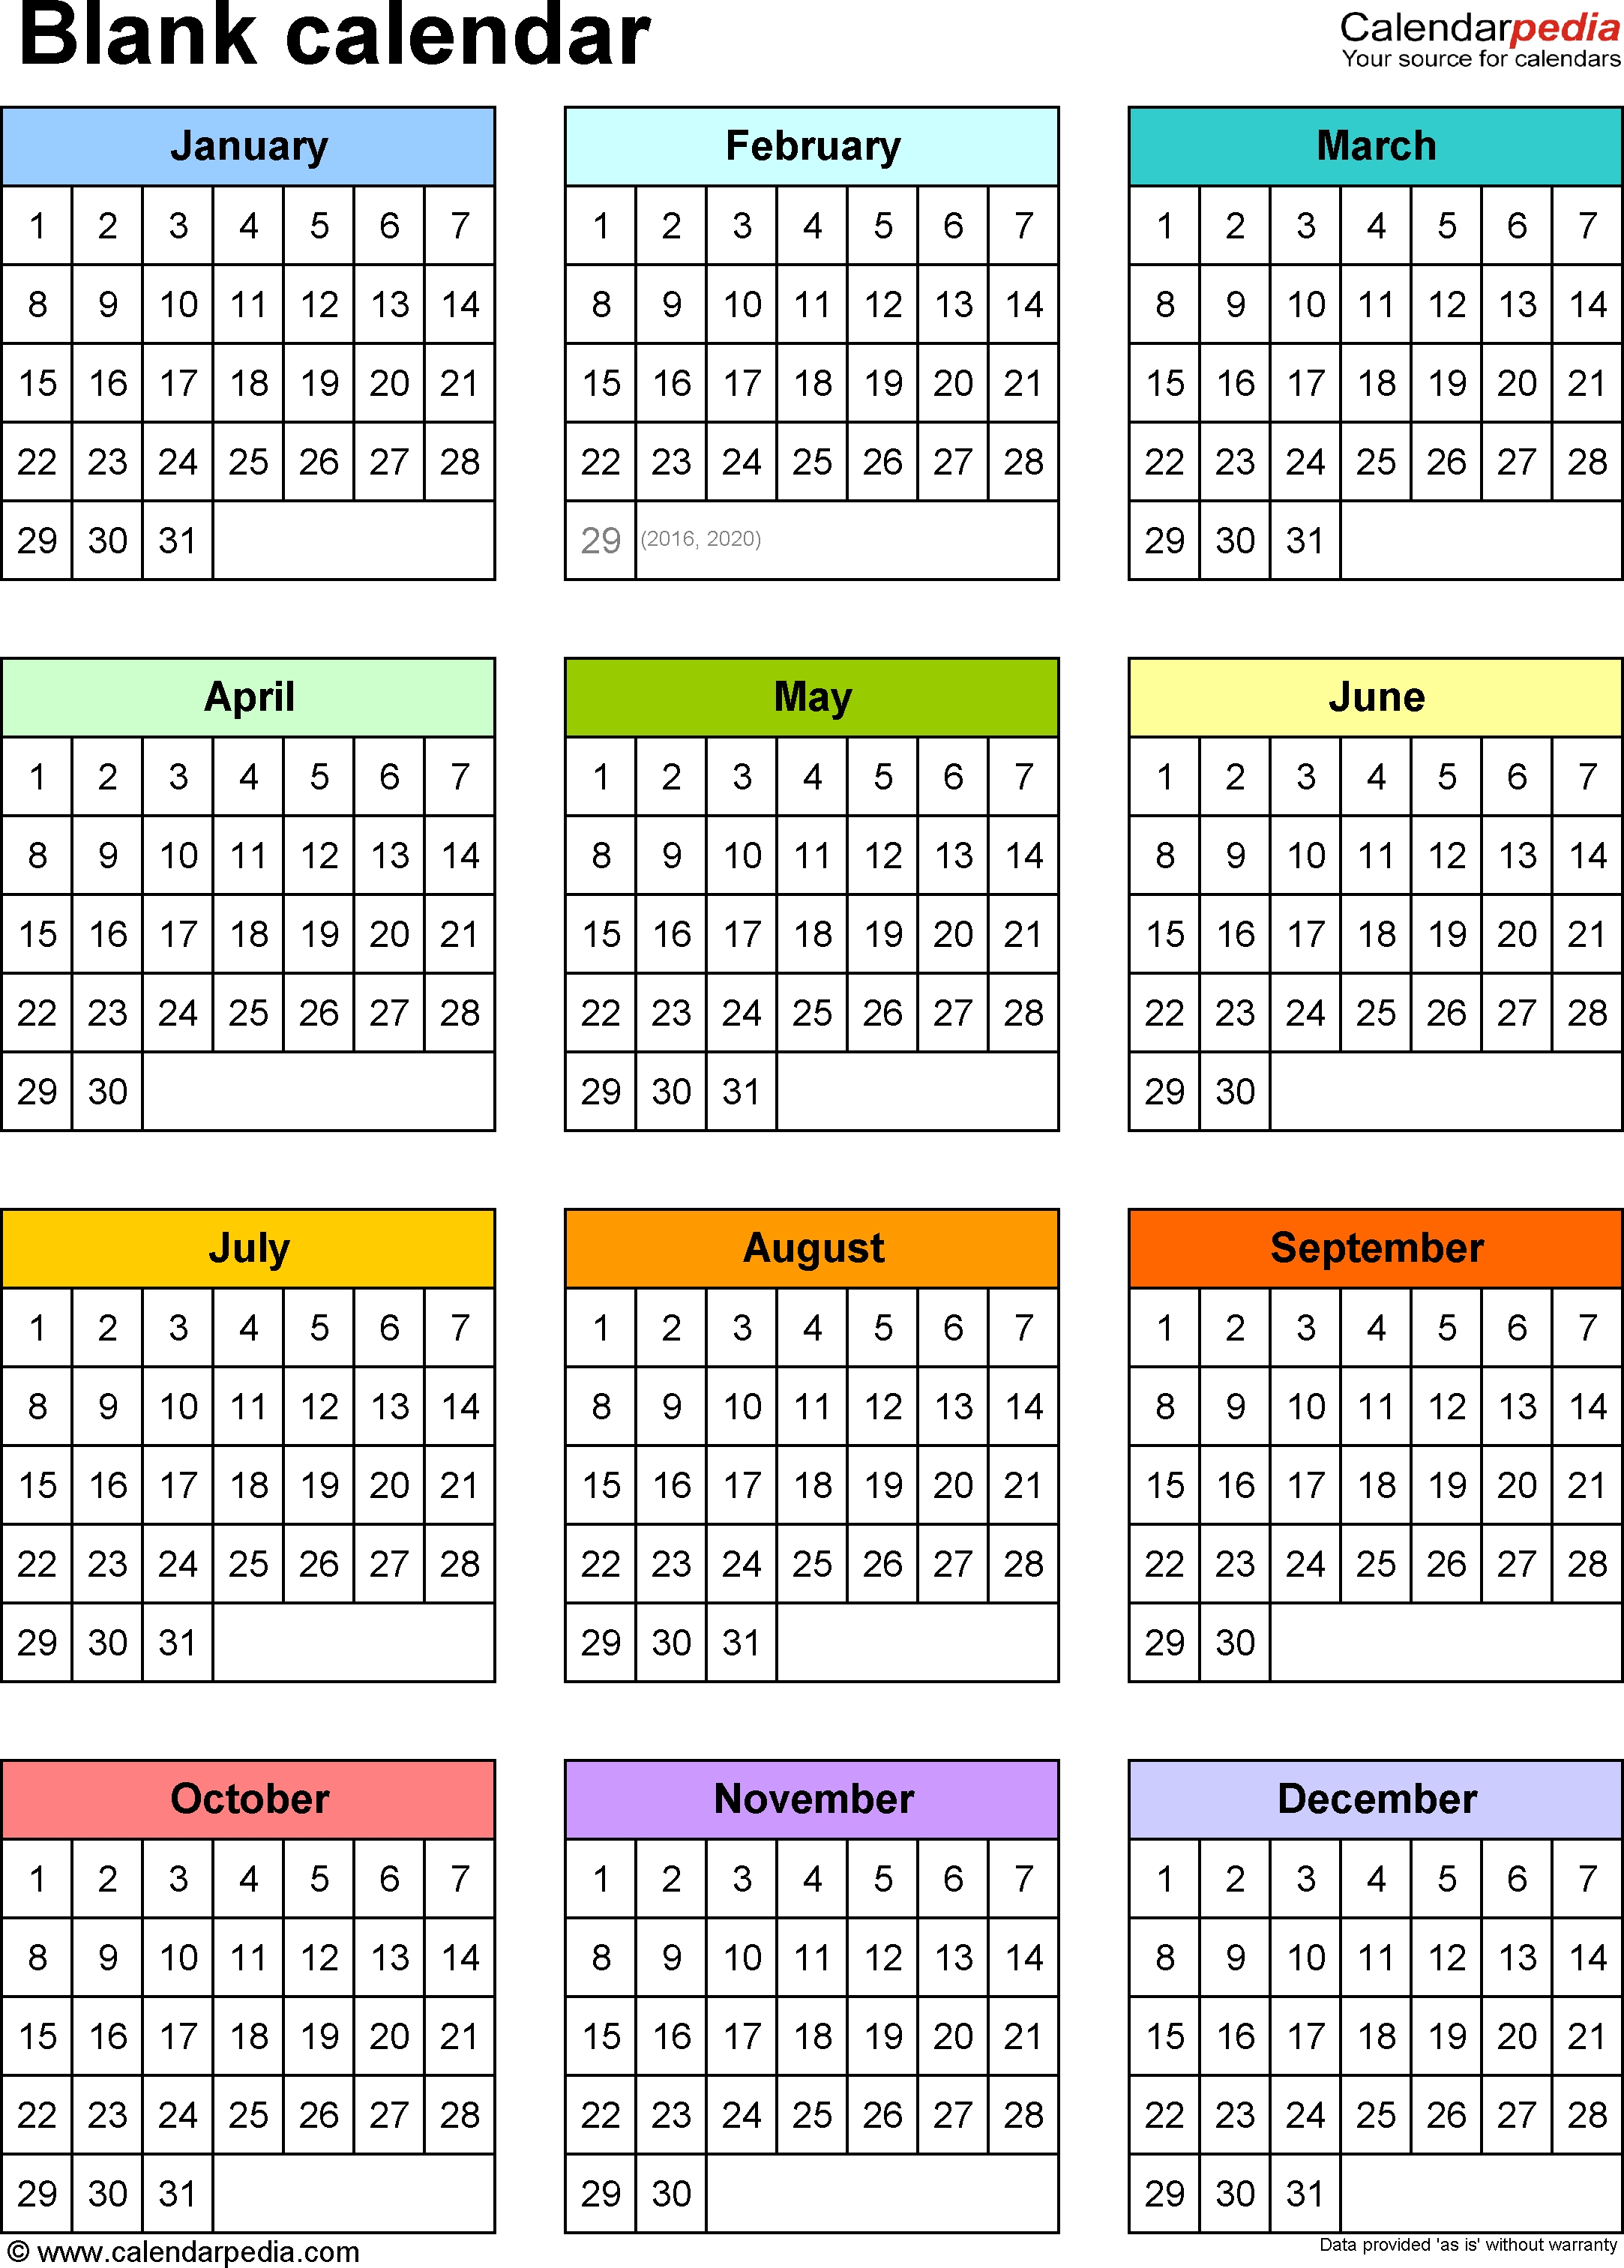 Blank Calendars - Free Printable Microsoft Excel Templates-Blank 6-Month Calendar Template